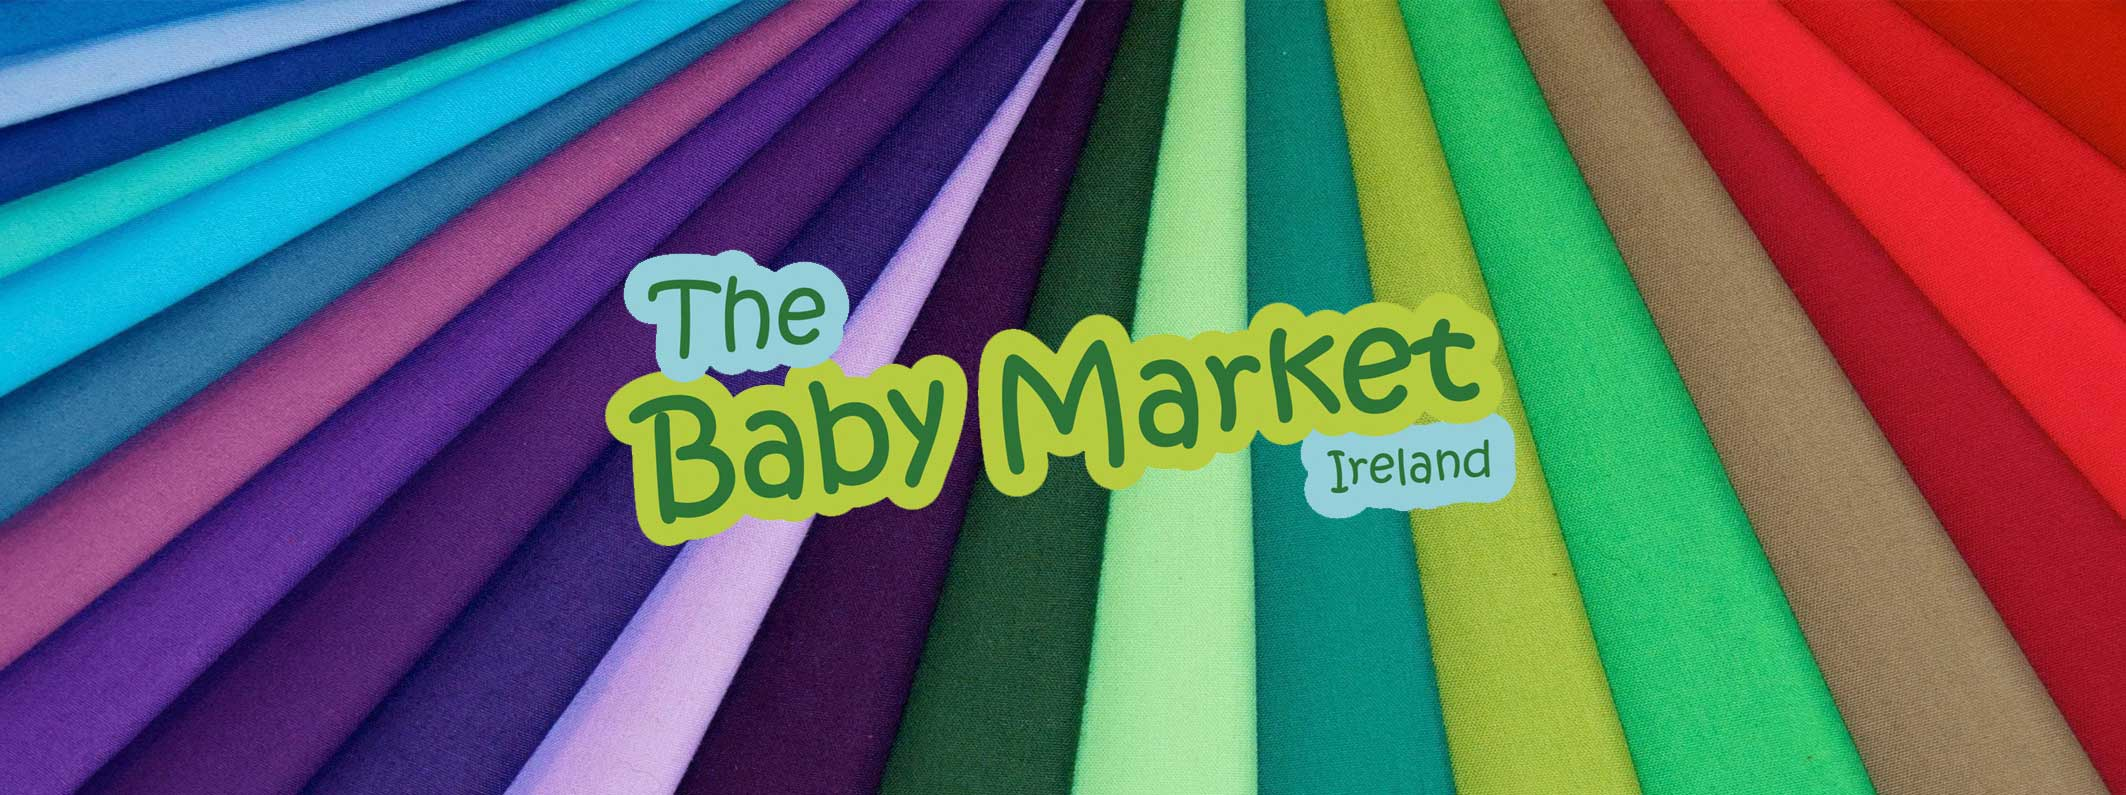 Baby Market Ireland Buy And Sell Pre Loved Baby Goods